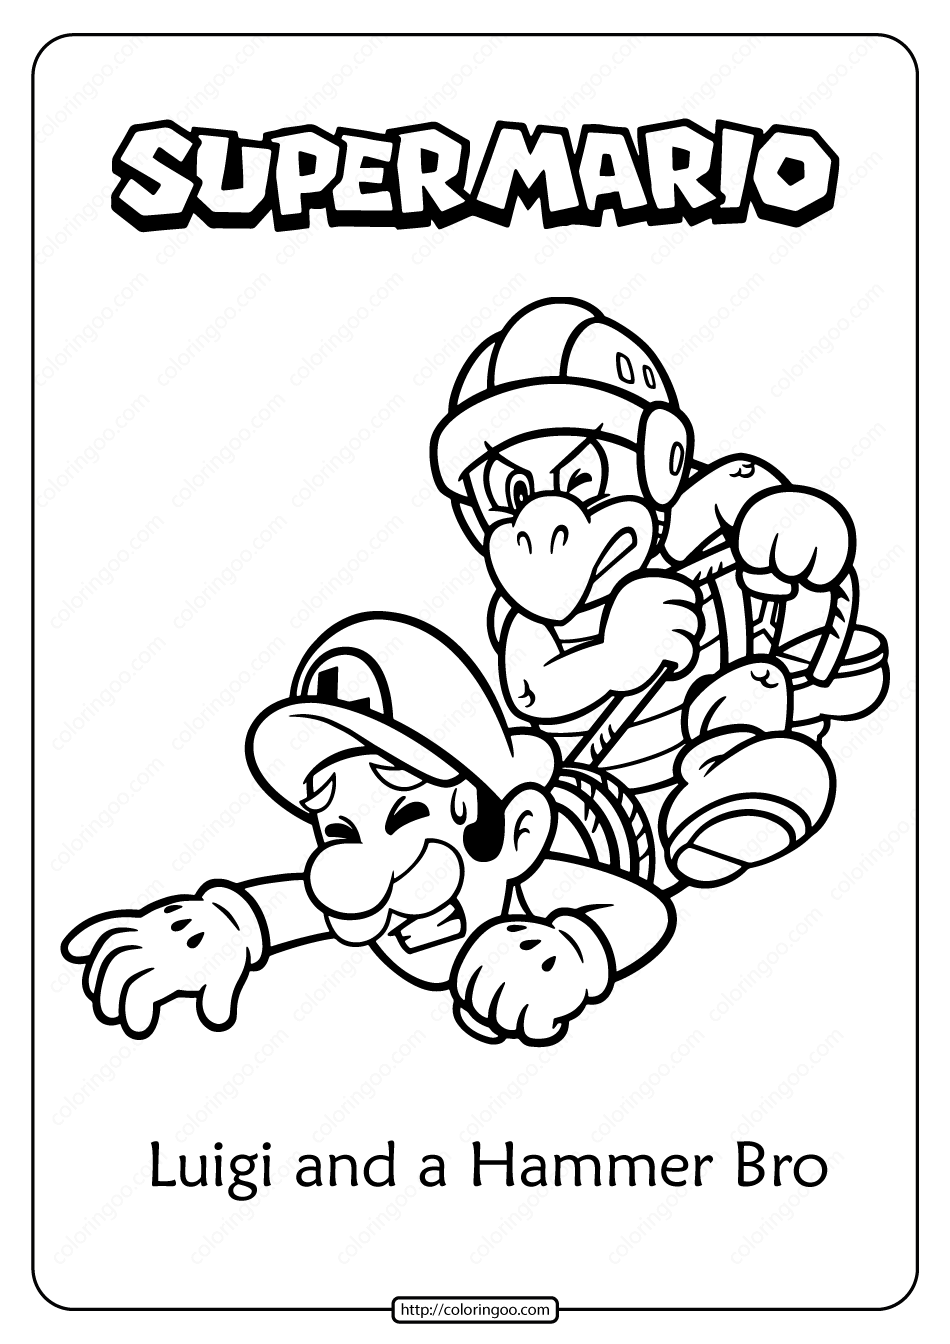 Free Printable Luigi and Hammer Bro Coloring Page